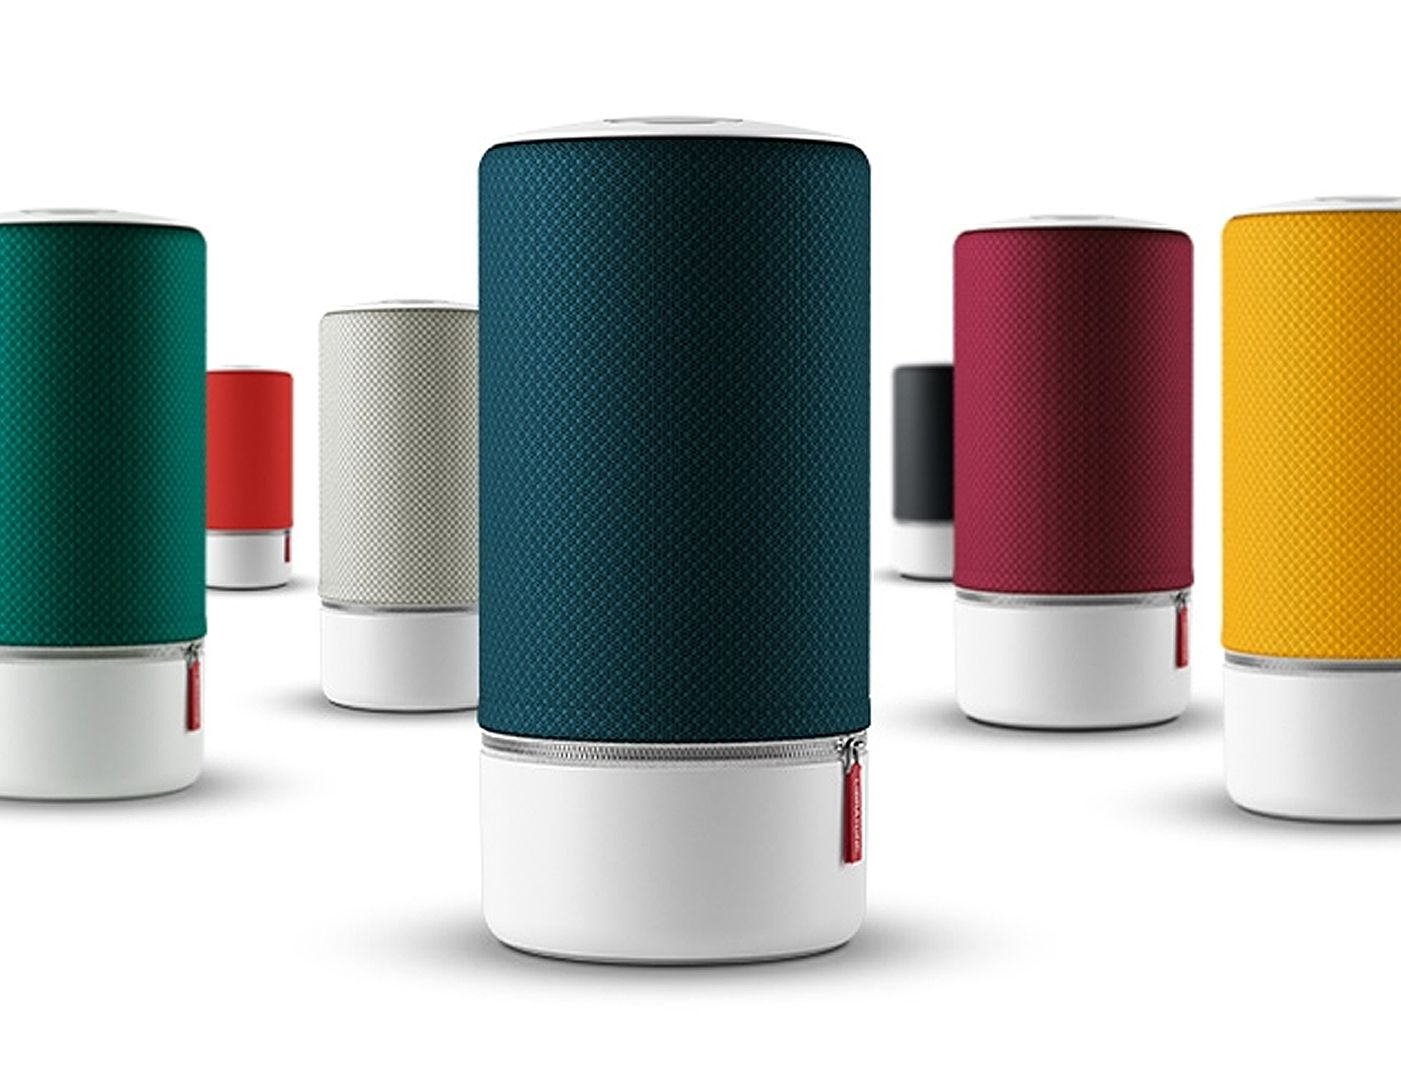 a review of libratone zipp zipp mini bluetooth speaker. Black Bedroom Furniture Sets. Home Design Ideas